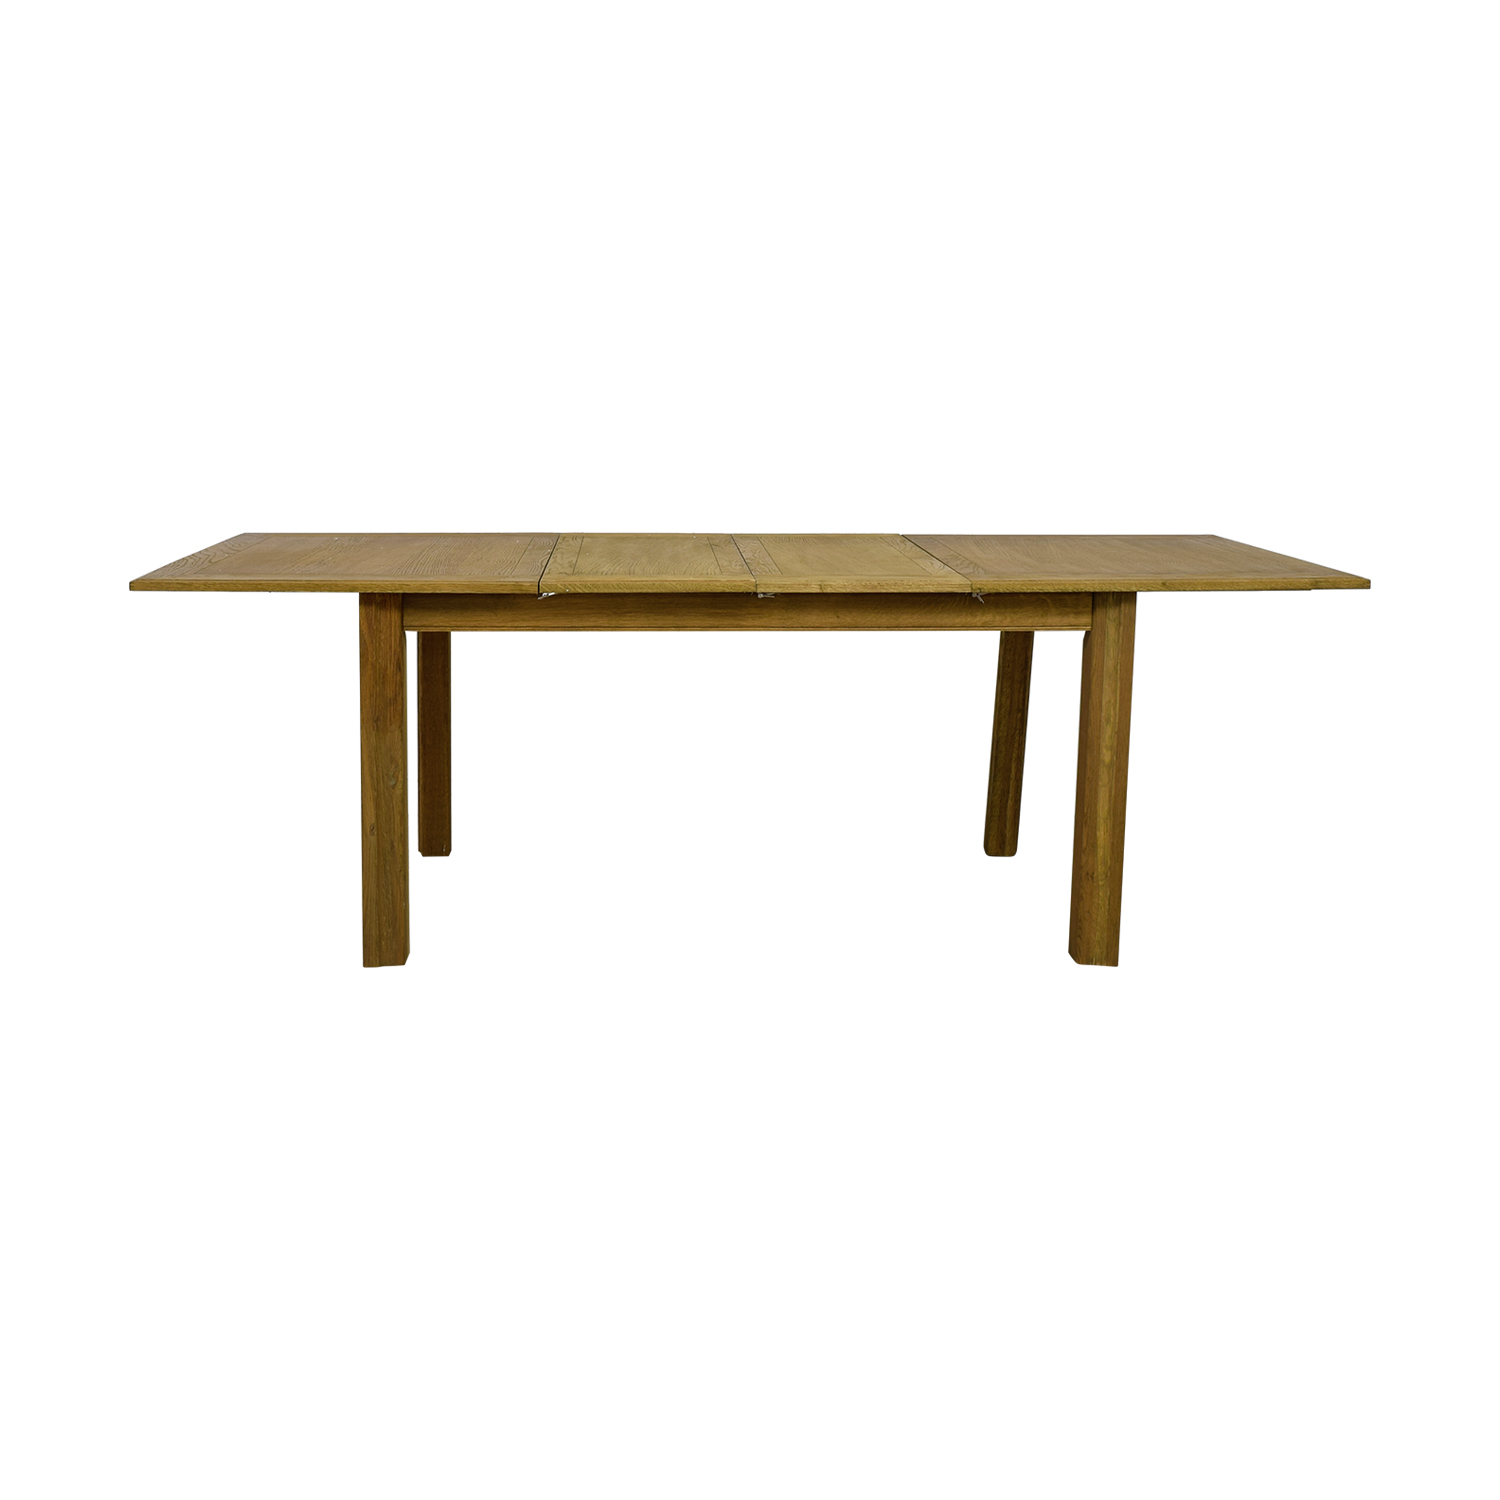 Restoration Hardware Restoration Hardware Reclaimed Oak Extentable Dining Table price